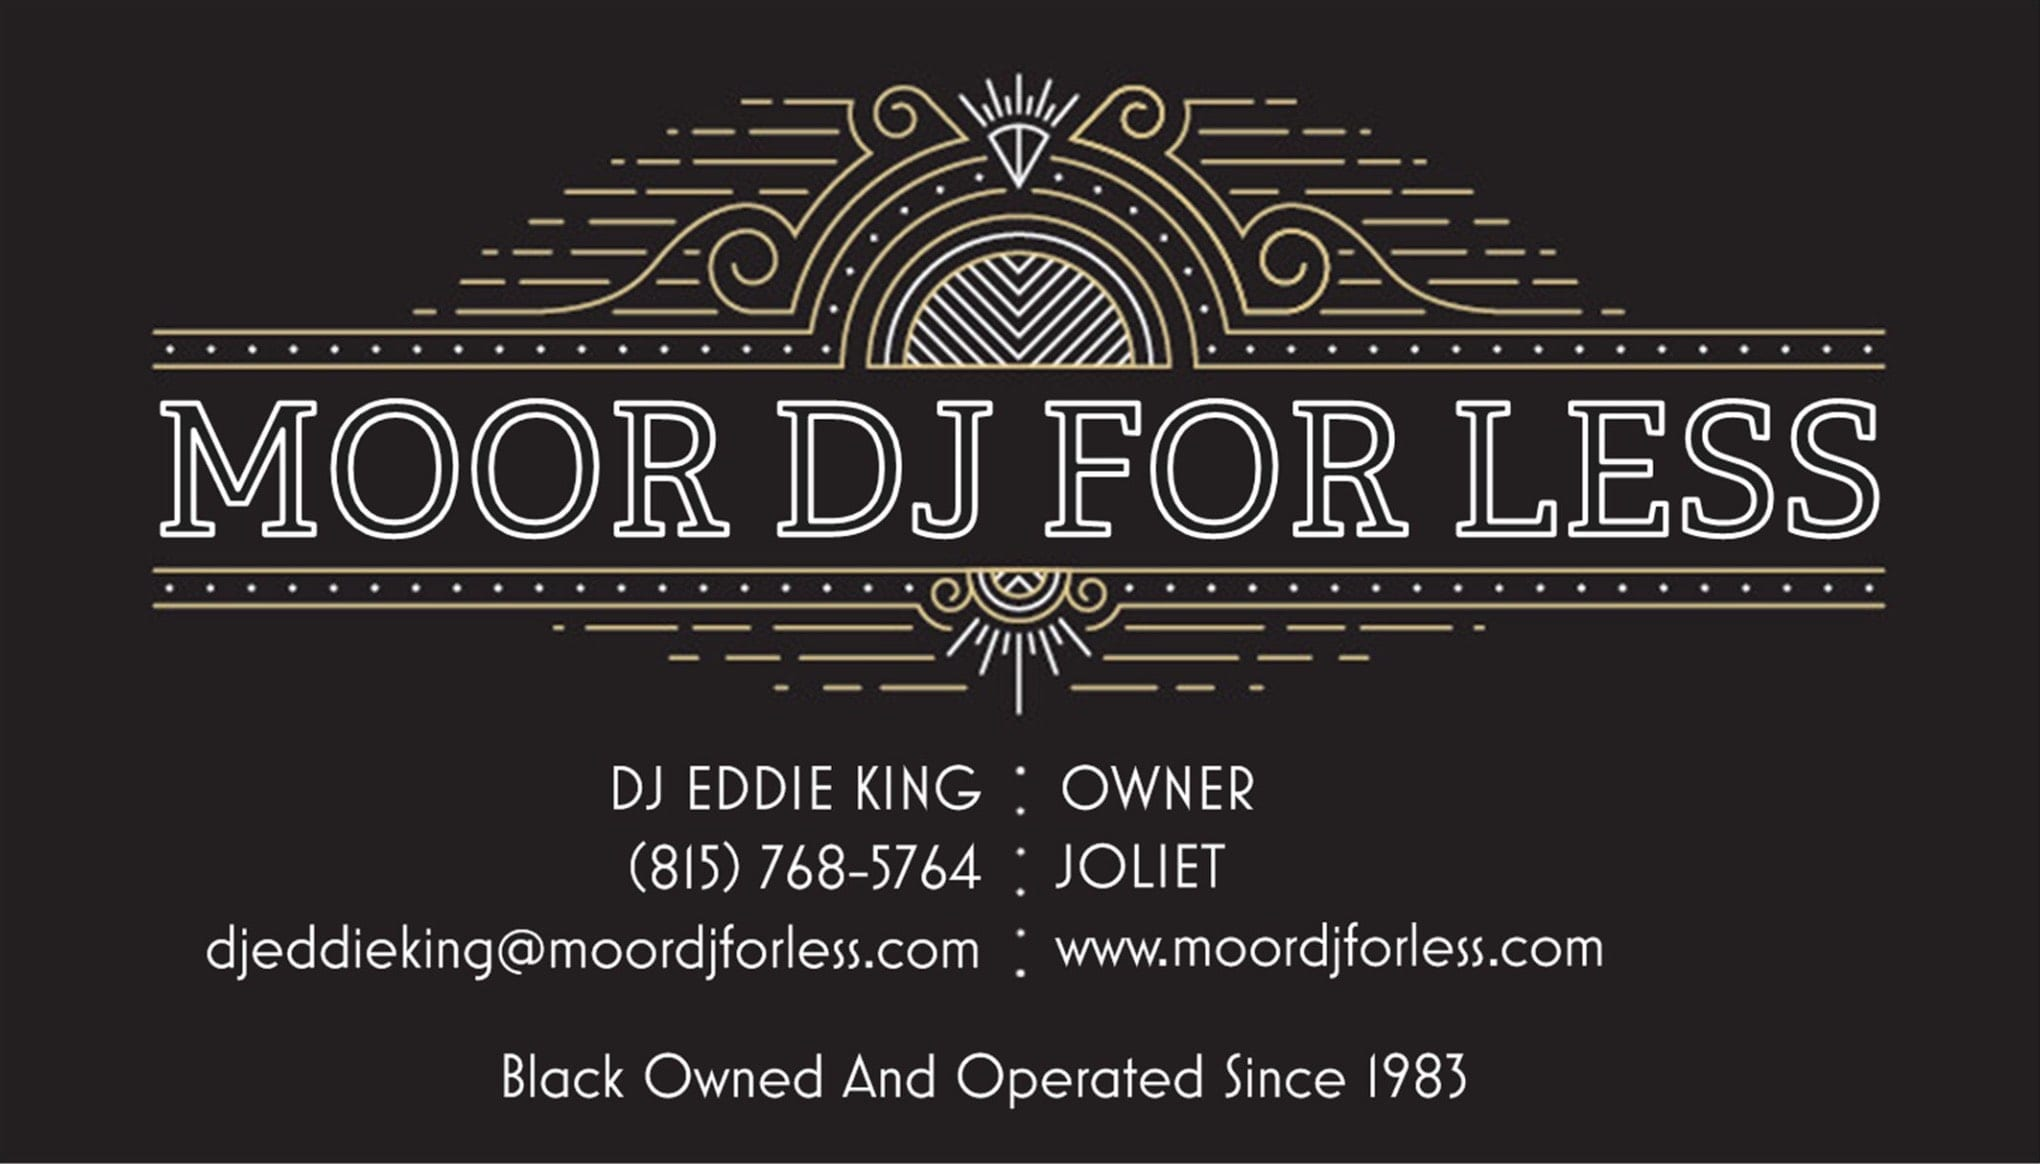 Moor DJ For Less